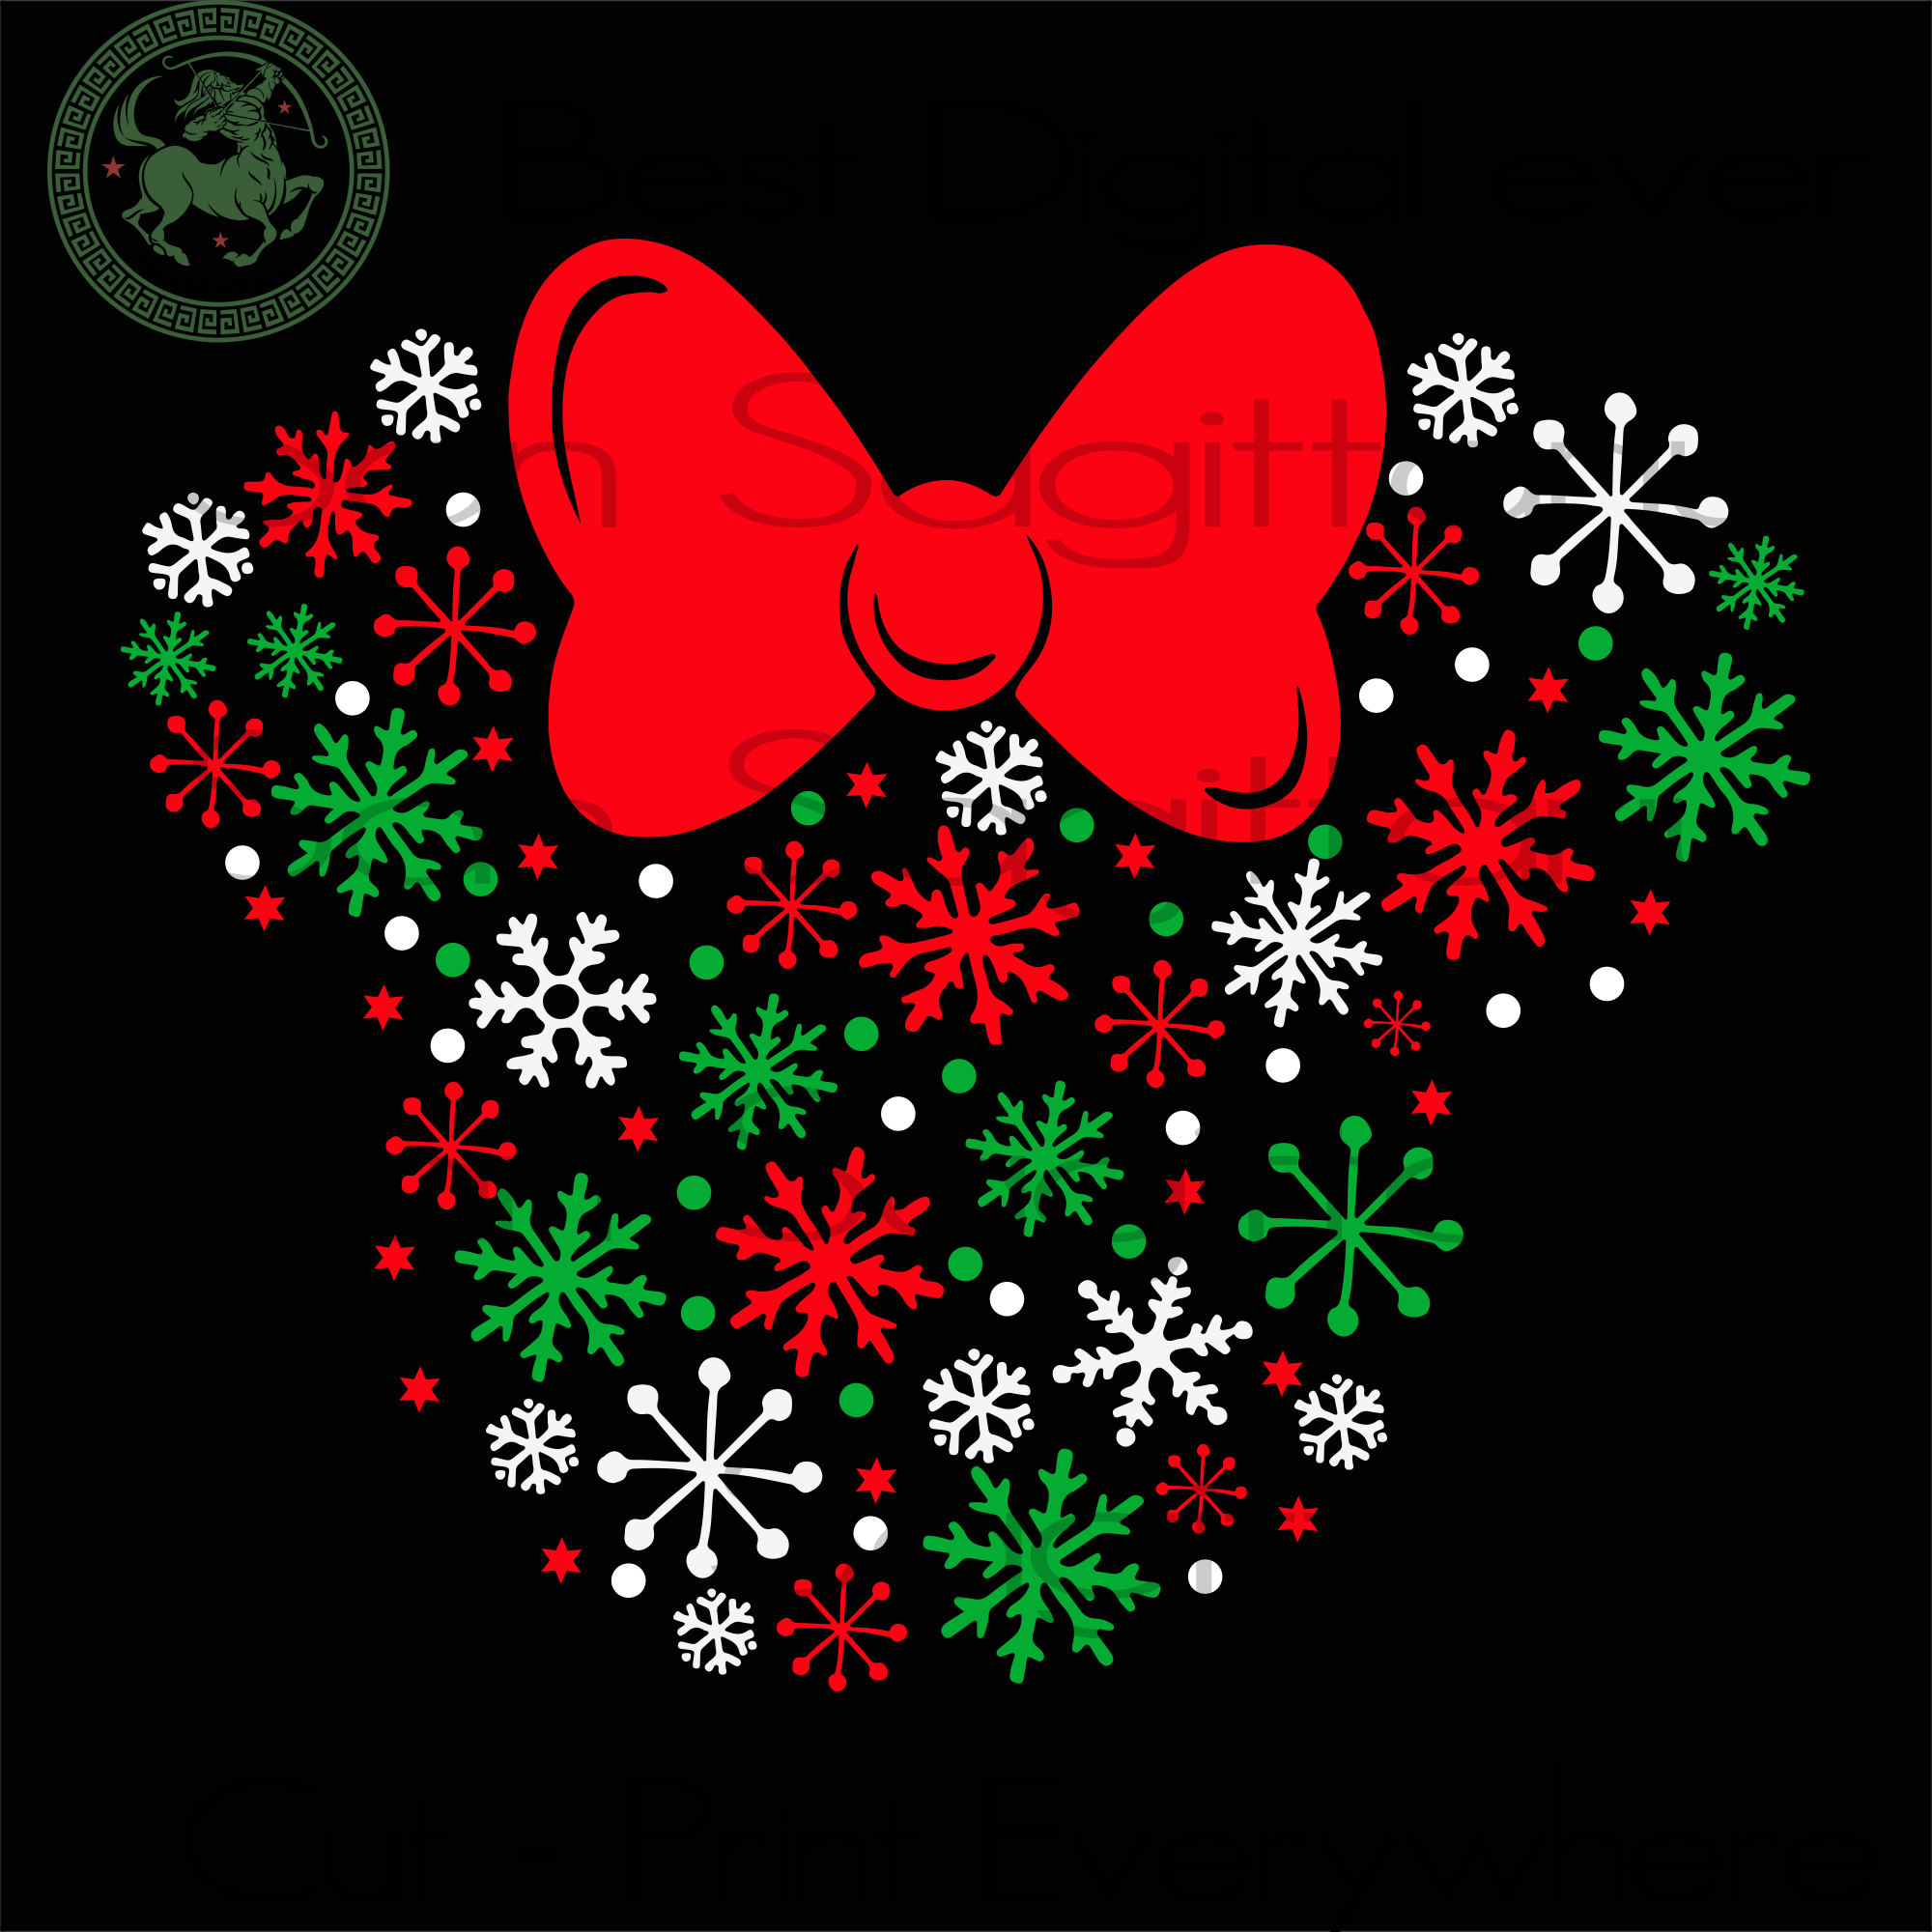 Disney Minnie Mouse Holiday Snowflakes, Christmas Svg, Minnie Mouse Svg, Christmas Gift, Minnie Mouse Gift, Christmas Tree, Christmas Decor, Minnie Mouse Shirt, Disney Svg, Christmas Minnie M